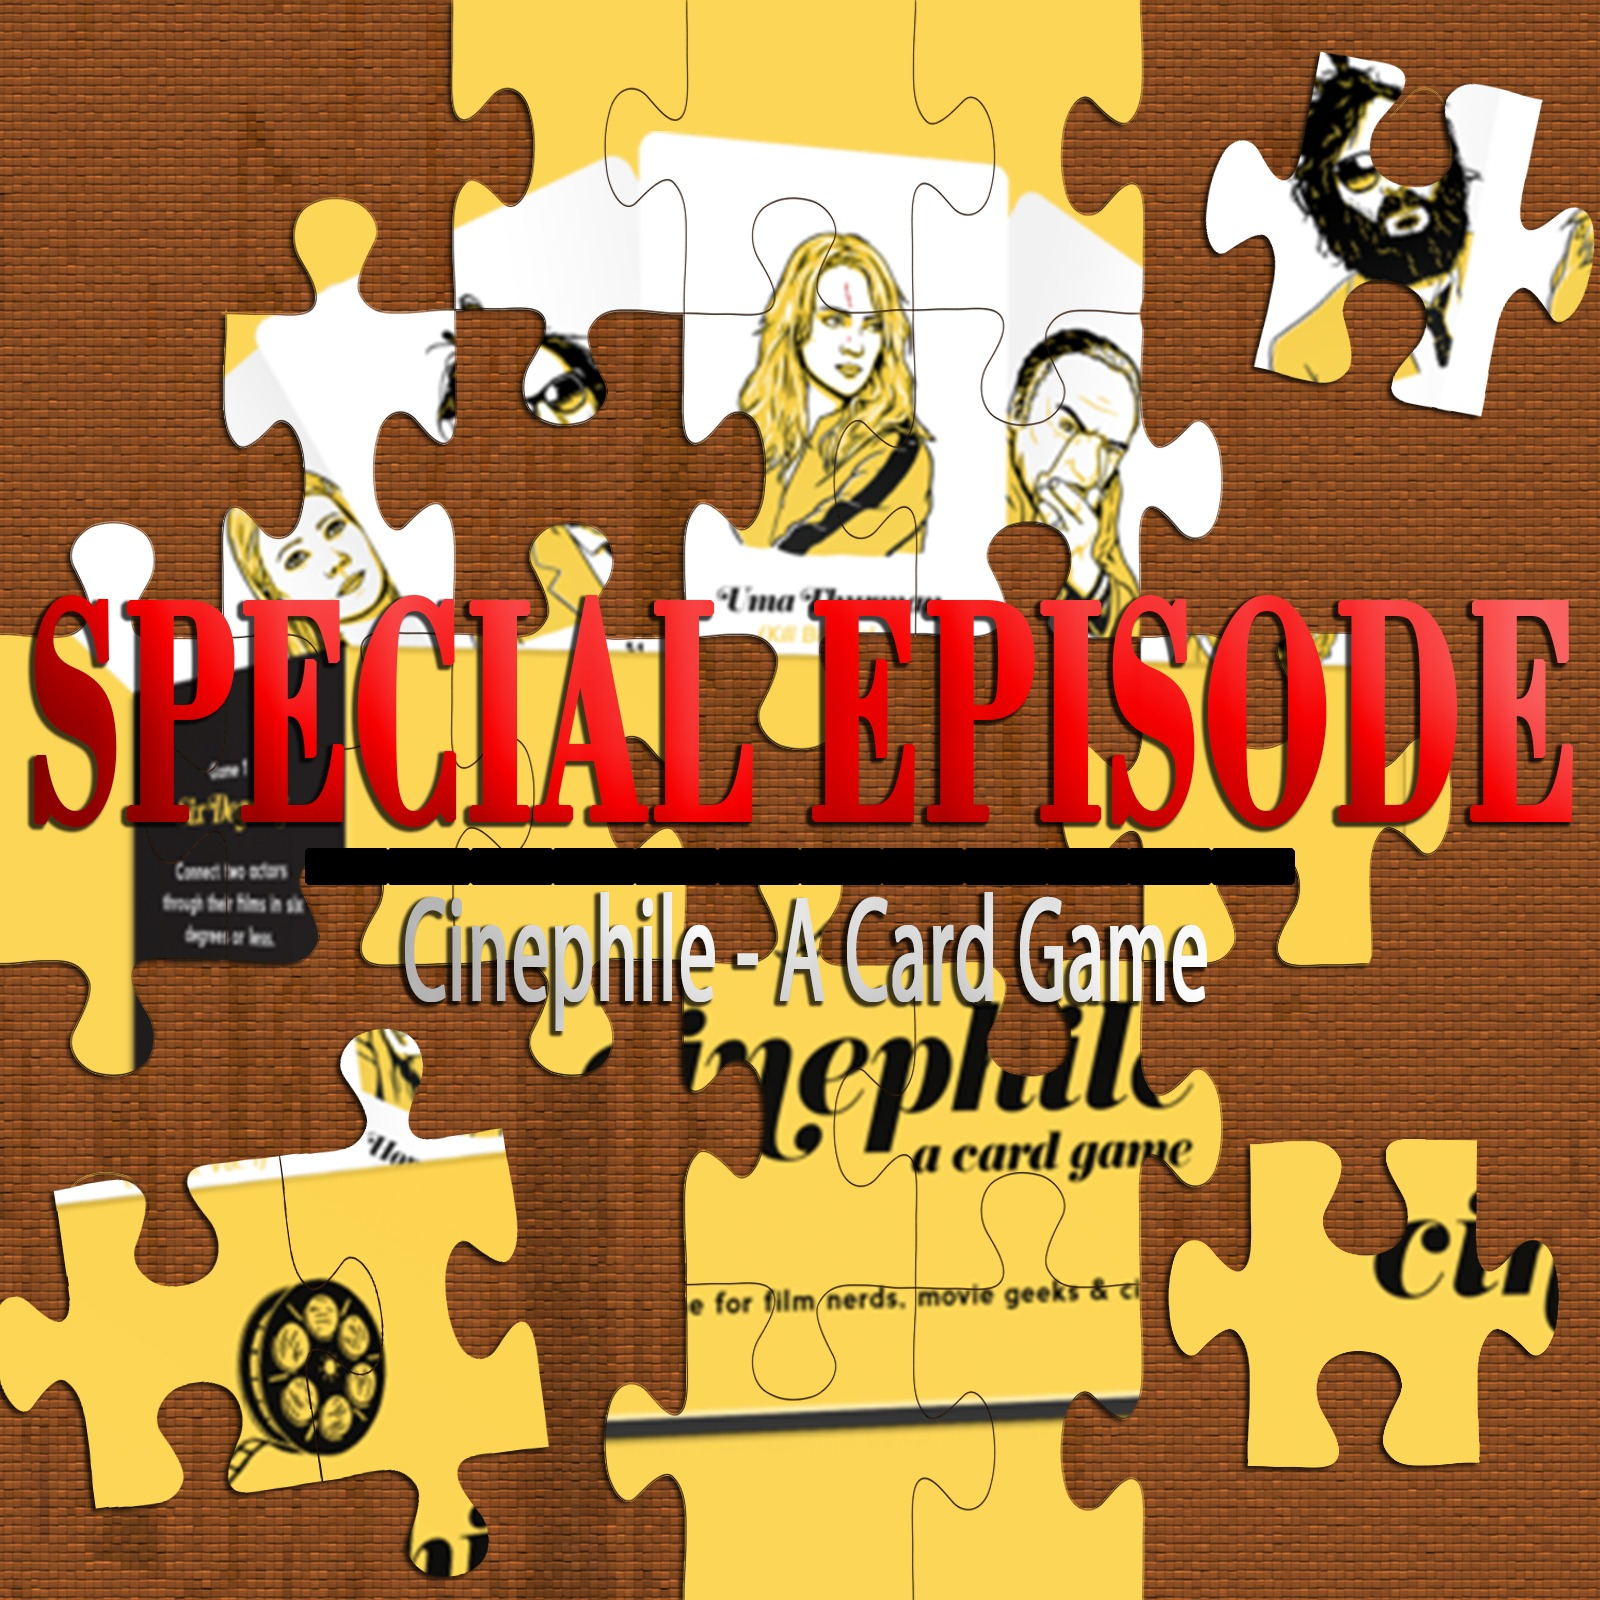 Cinephile – A Card Game (Special Episode)